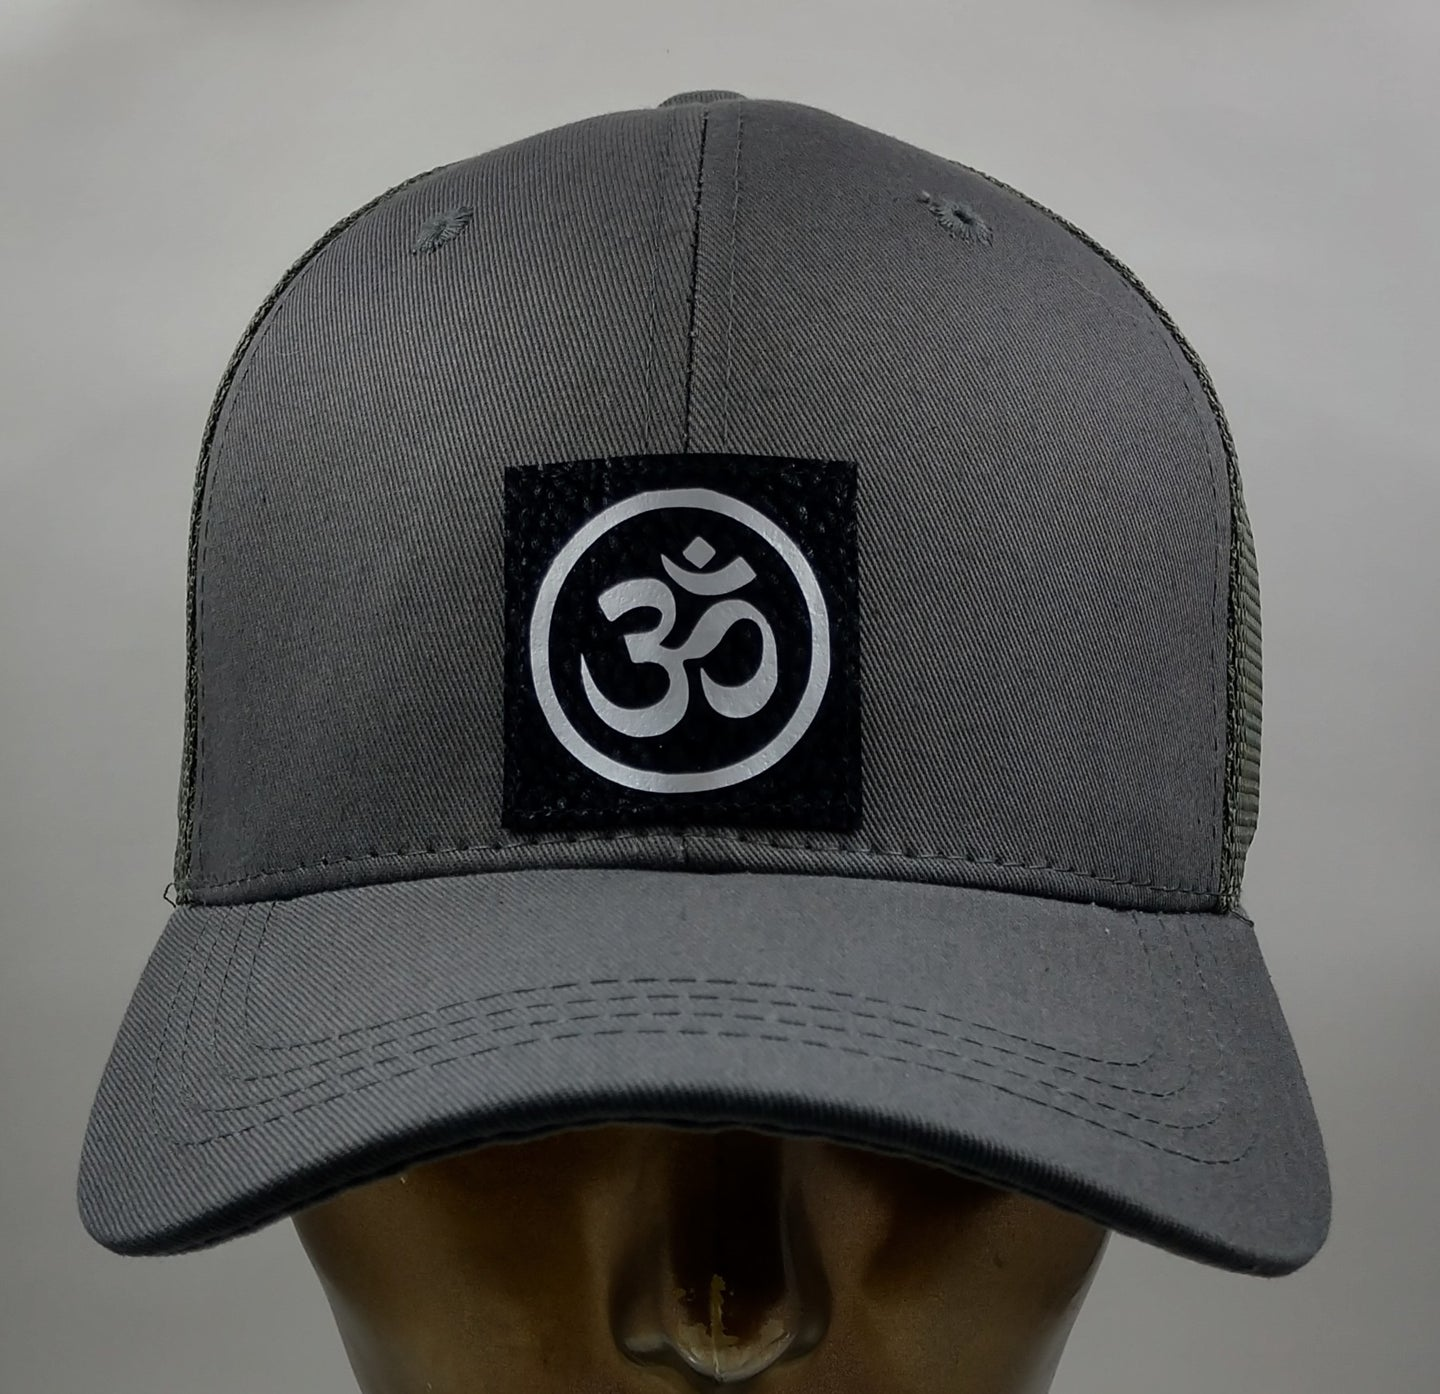 Buddha gear Buddha Lids Buddha Wear Ohm is a sacred sound and a sacred spiritual symbol in Hinduism, that signifies the essence of the ultimate reality, consciousness or Atman (soul). Some believe it is the sound of creation.